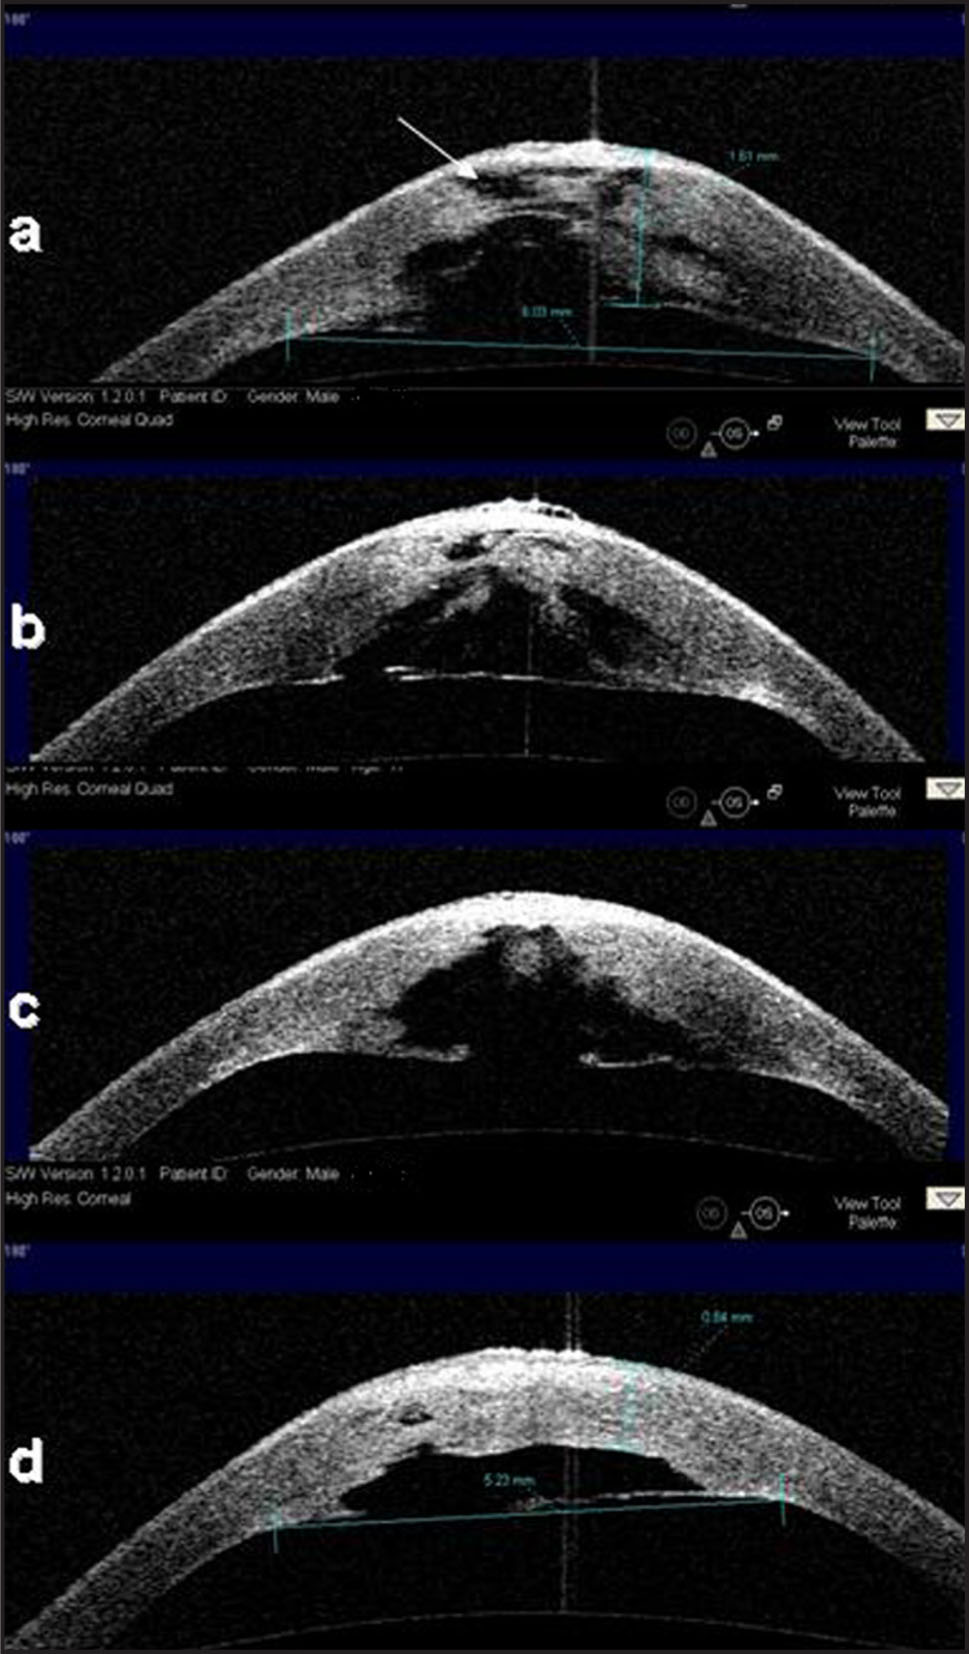 Anterior Segment Optical Coherence Tomography (AS-OCT) Images of Acute Hydrops in Chronological Order. The Findings were Similar in 4 Quadrants Therefore only Horizontal Images Have Been Presented for Comparison. (a) High Resolution Corneal Image on Horizontal Meridian at Presentation. A Large Defect in the Descemet's Membrane is Noticeable. There are Numerous Stromal Pseudocysts with Different Sizes Having Contact with Each Other in a Petalloid Pattern. White Arrow Indicates the Thinnest Part of the Cornea–the epitheliocele. The Diameter of the edematous Zone in the Cornea was Measured as 6.03 mm; The Thickness was 1.61 mm. (b) AS-OCT Image of the Eye One Month Later. The Pseudocysts in the Anterior Stroma Tend to Coalesce and Form a Big Conical Pseudocyst Posteriorly. The Epitheliocele has Become Thicker; The Descemet's Membrane Shows a Double Contour at One End. (c) AS-OCT Image of the Eye 2 Months Later. One Big Pseudocyst has Formed Between the Descemet's Membrane and Stroma. The Free Edges of the Descemet's Membrane are Rolled Inwards and Appear Thicker. (d) AS-OCT Image of the Eye 4 Months Later. The Epitheliocele has Disappeared. The Corneal Stroma Appears Considerably Normal with No Clefts Between the Lamellae. The Pseudocyst is Narrower with a Smooth Lining. The Diameter of the Edematous Zone in the Cornea Decreased to 5.23 mm and the Thickness Reduced to 0.84 mm.